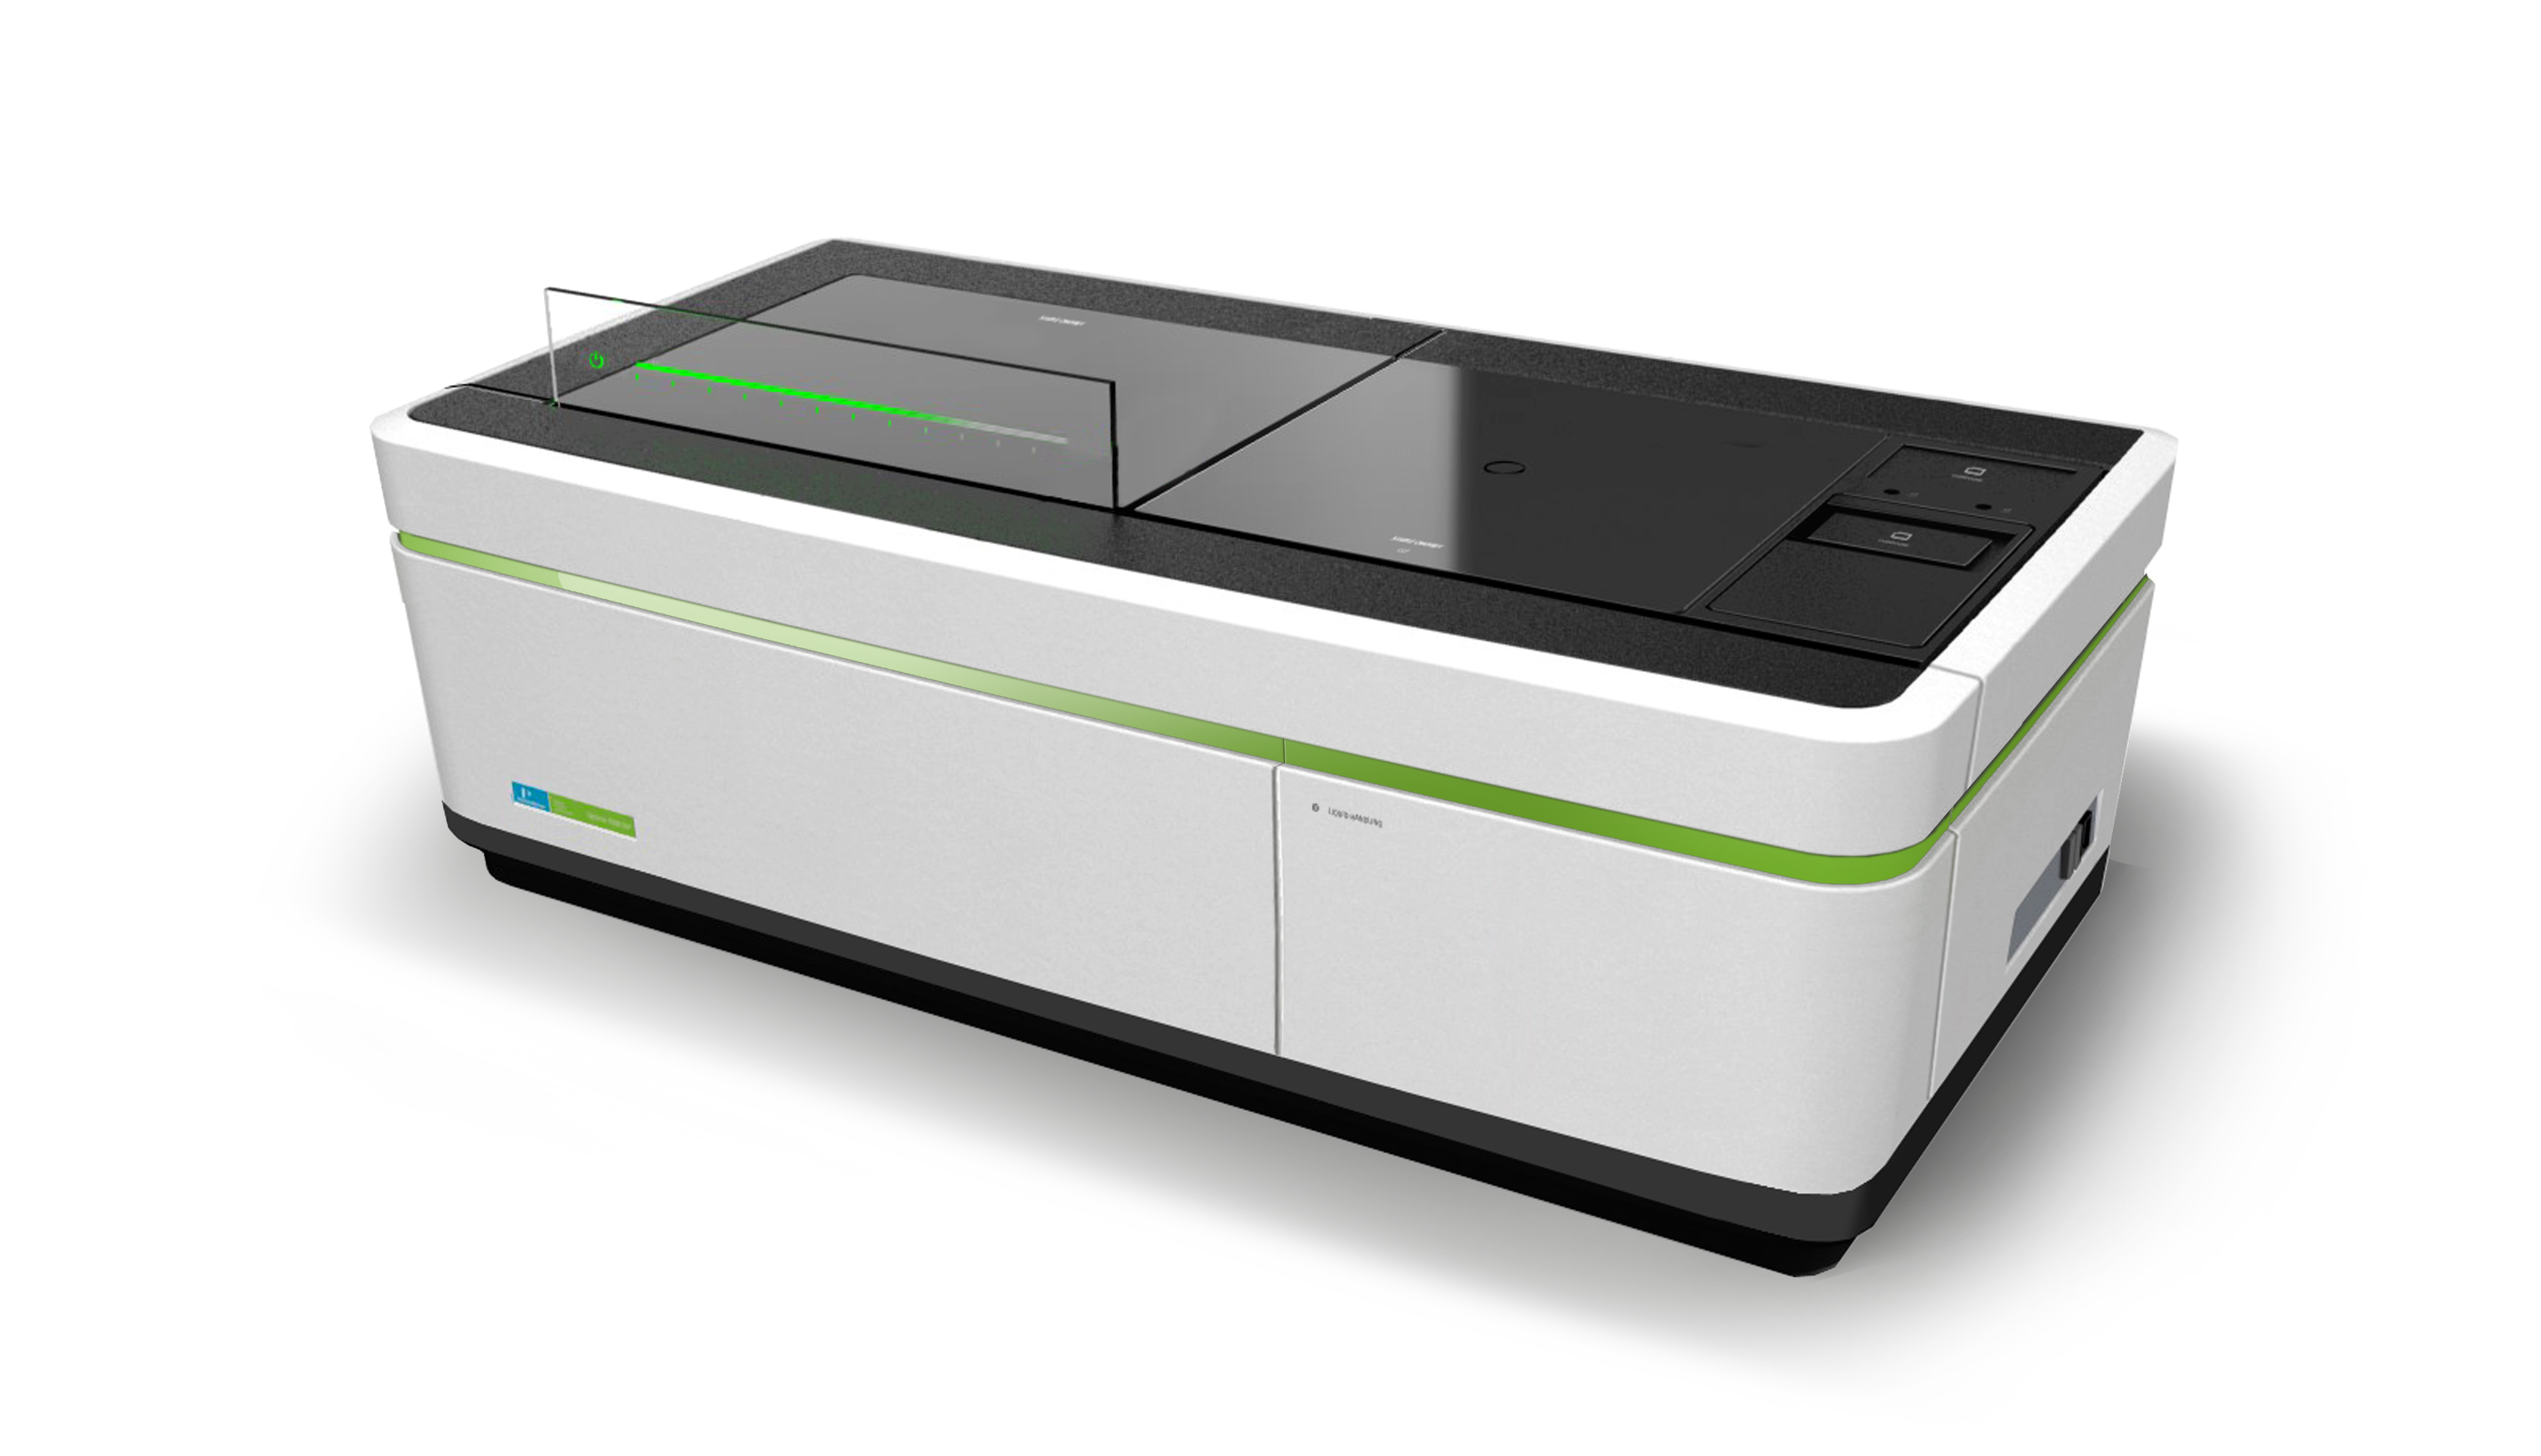 PerkinElmer introduces the Opera(R) Phenix, a next generation confocal high content screening system that is designed to reliably discriminate phenotypes of complex cellular models, such as primary cells and 3D microtissue, which are more indicative of human biology. The system's patented Synchony(TM) Optics control excitation to eliminate unwanted crosstalk in the sample, resulting in better sensitivity but without compromising speed.